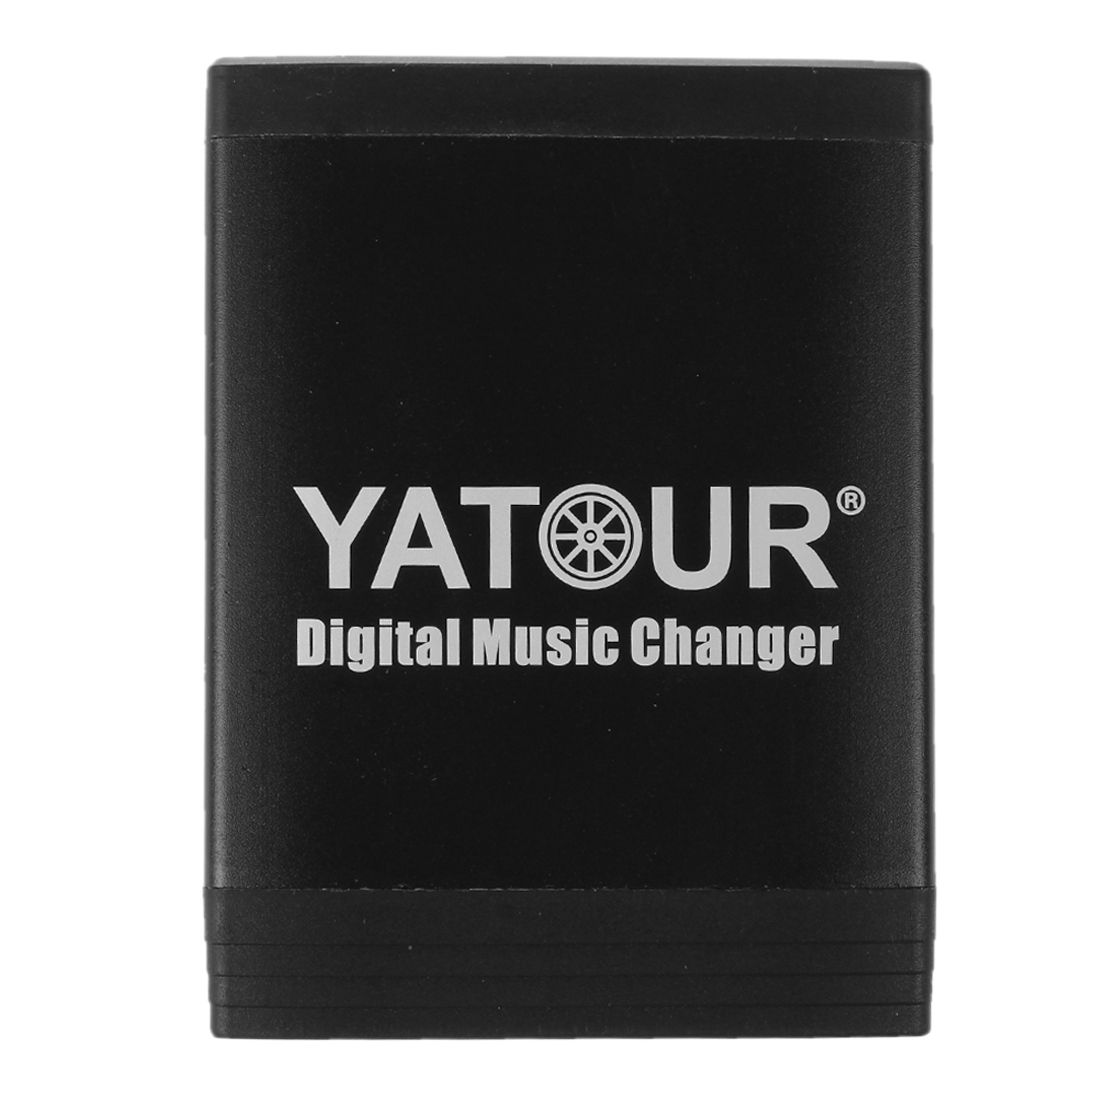 YATOUR Digital Music Changer for BMW 3pin+6pin Trunk Connector USB Sd AUX Mp3 Adapter yatour digital cd changer car stereo usb bluetooth adapter for bmw